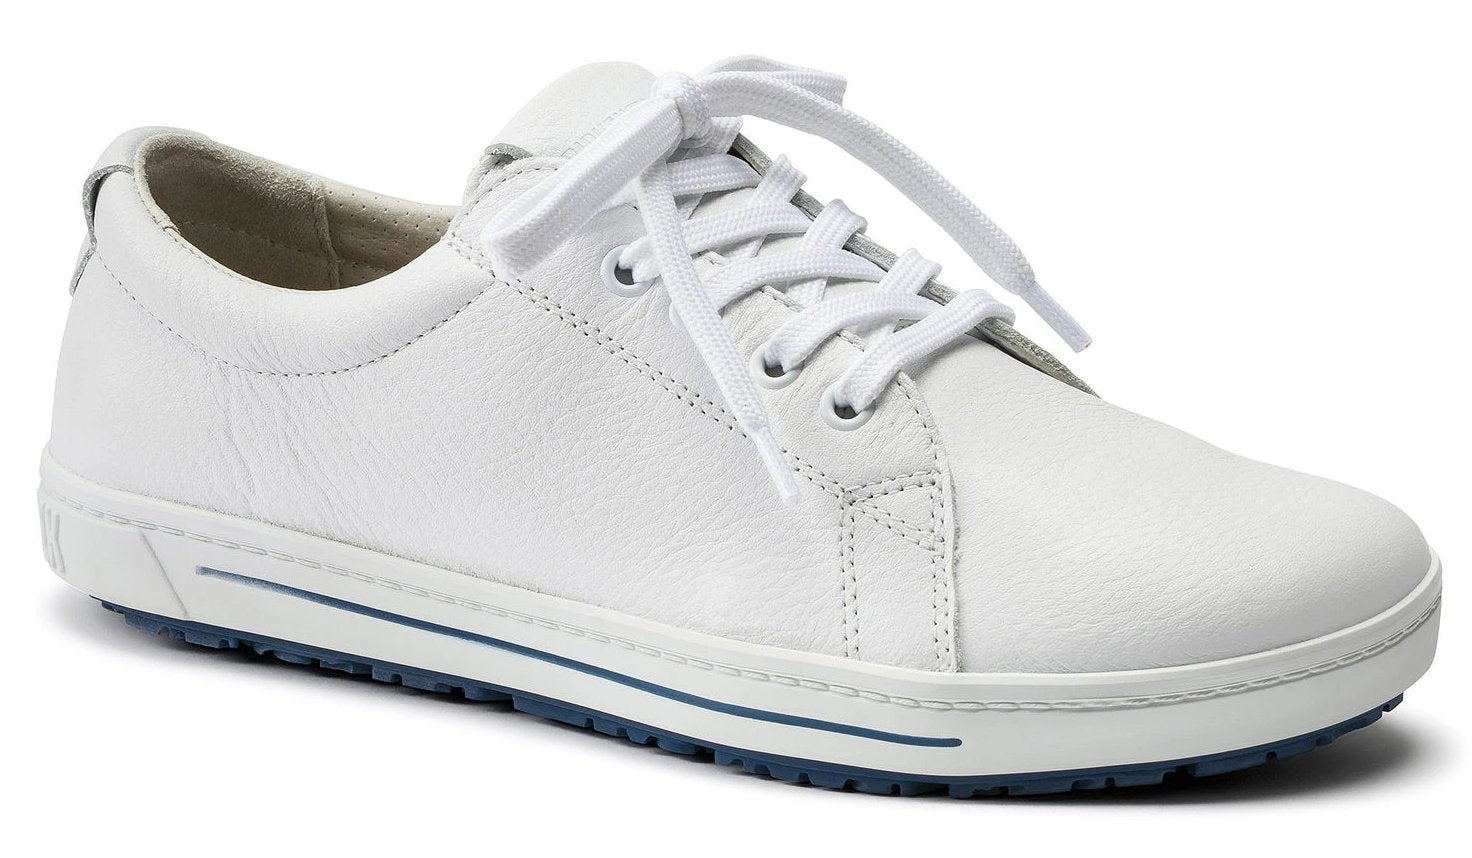 QO 500 - White Leather